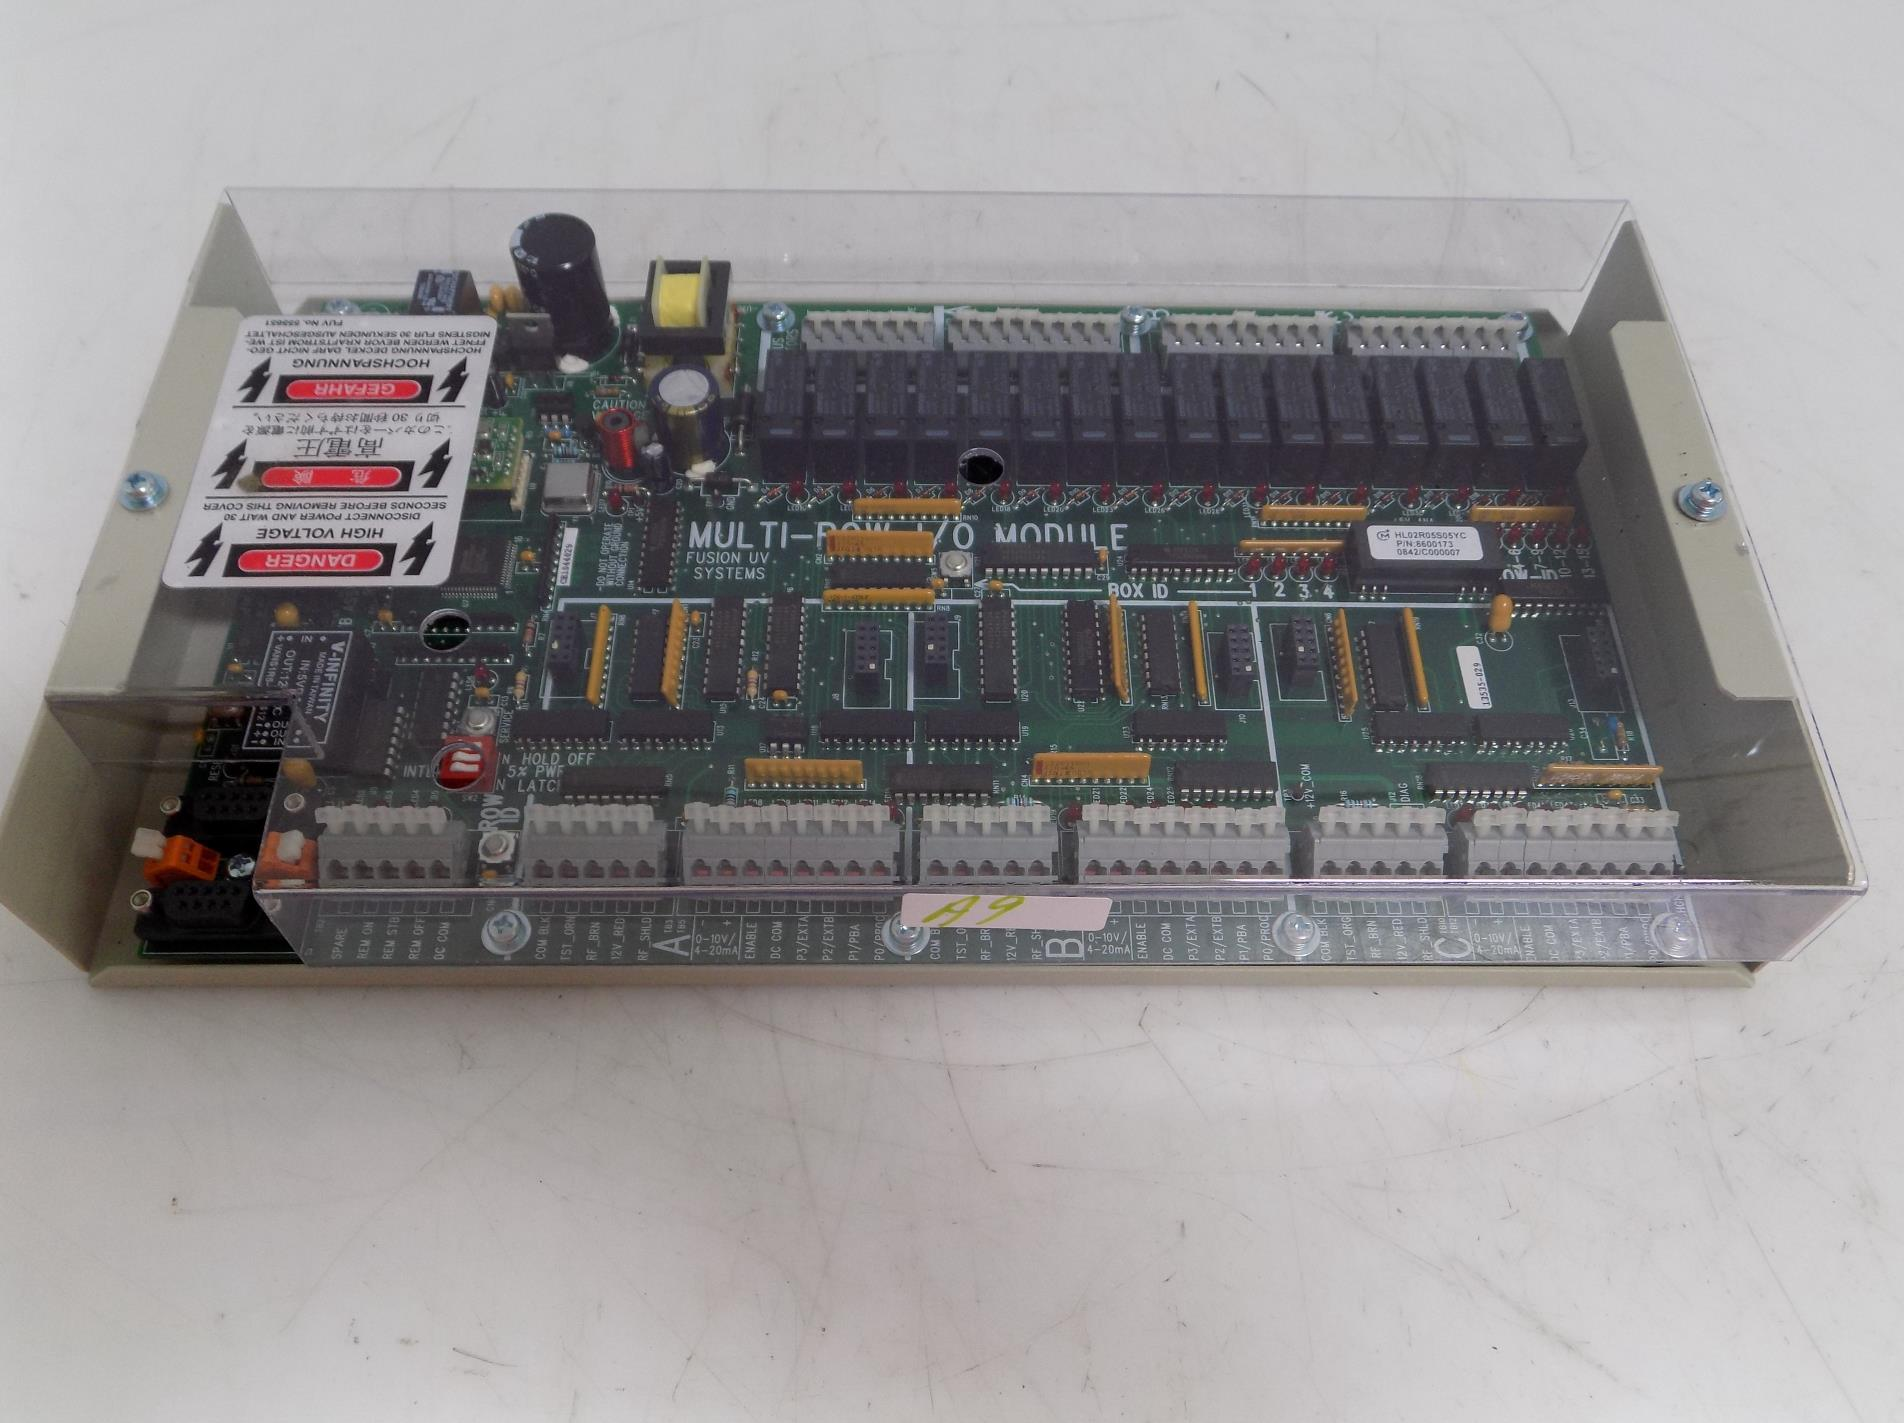 GREENSPRING I//O MODULE OPTO-22 INTERFACE IP-DIGITAL24//IP-OPTO-22 *PZF*